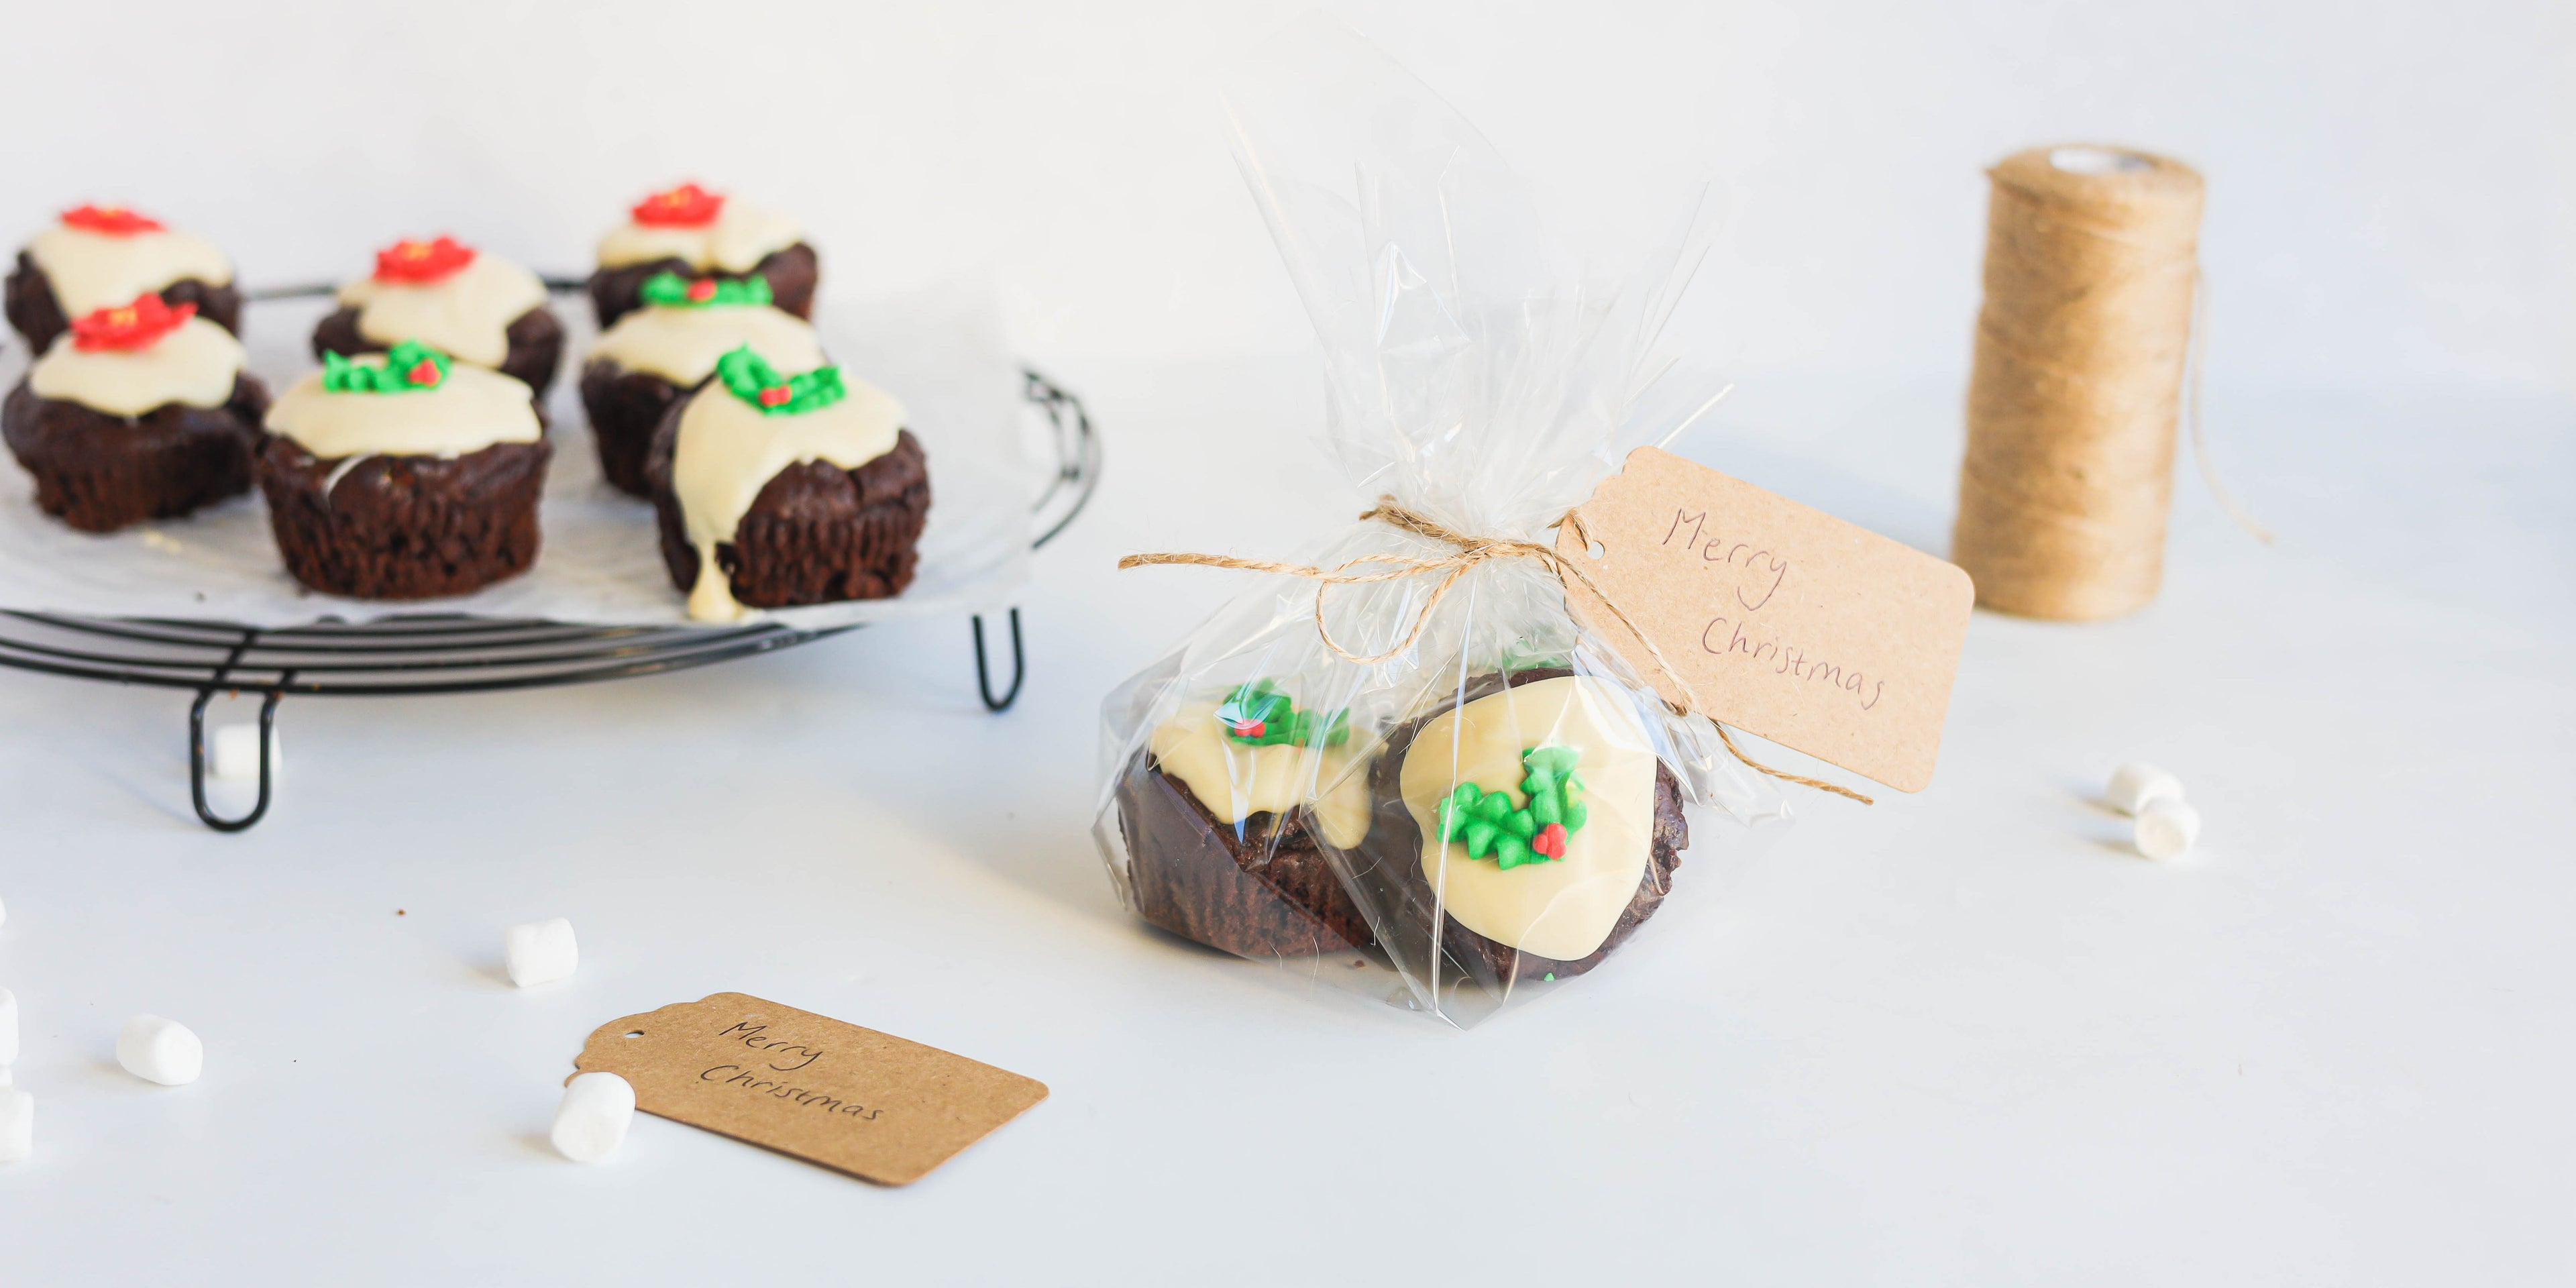 Mini Rocky Road Christmas Pudding Muffins on a wire rack, with a package of Mini Rocky Road Christmas Pudding Muffins hand tied in the foreground with a handwritten Christmas gift greeting